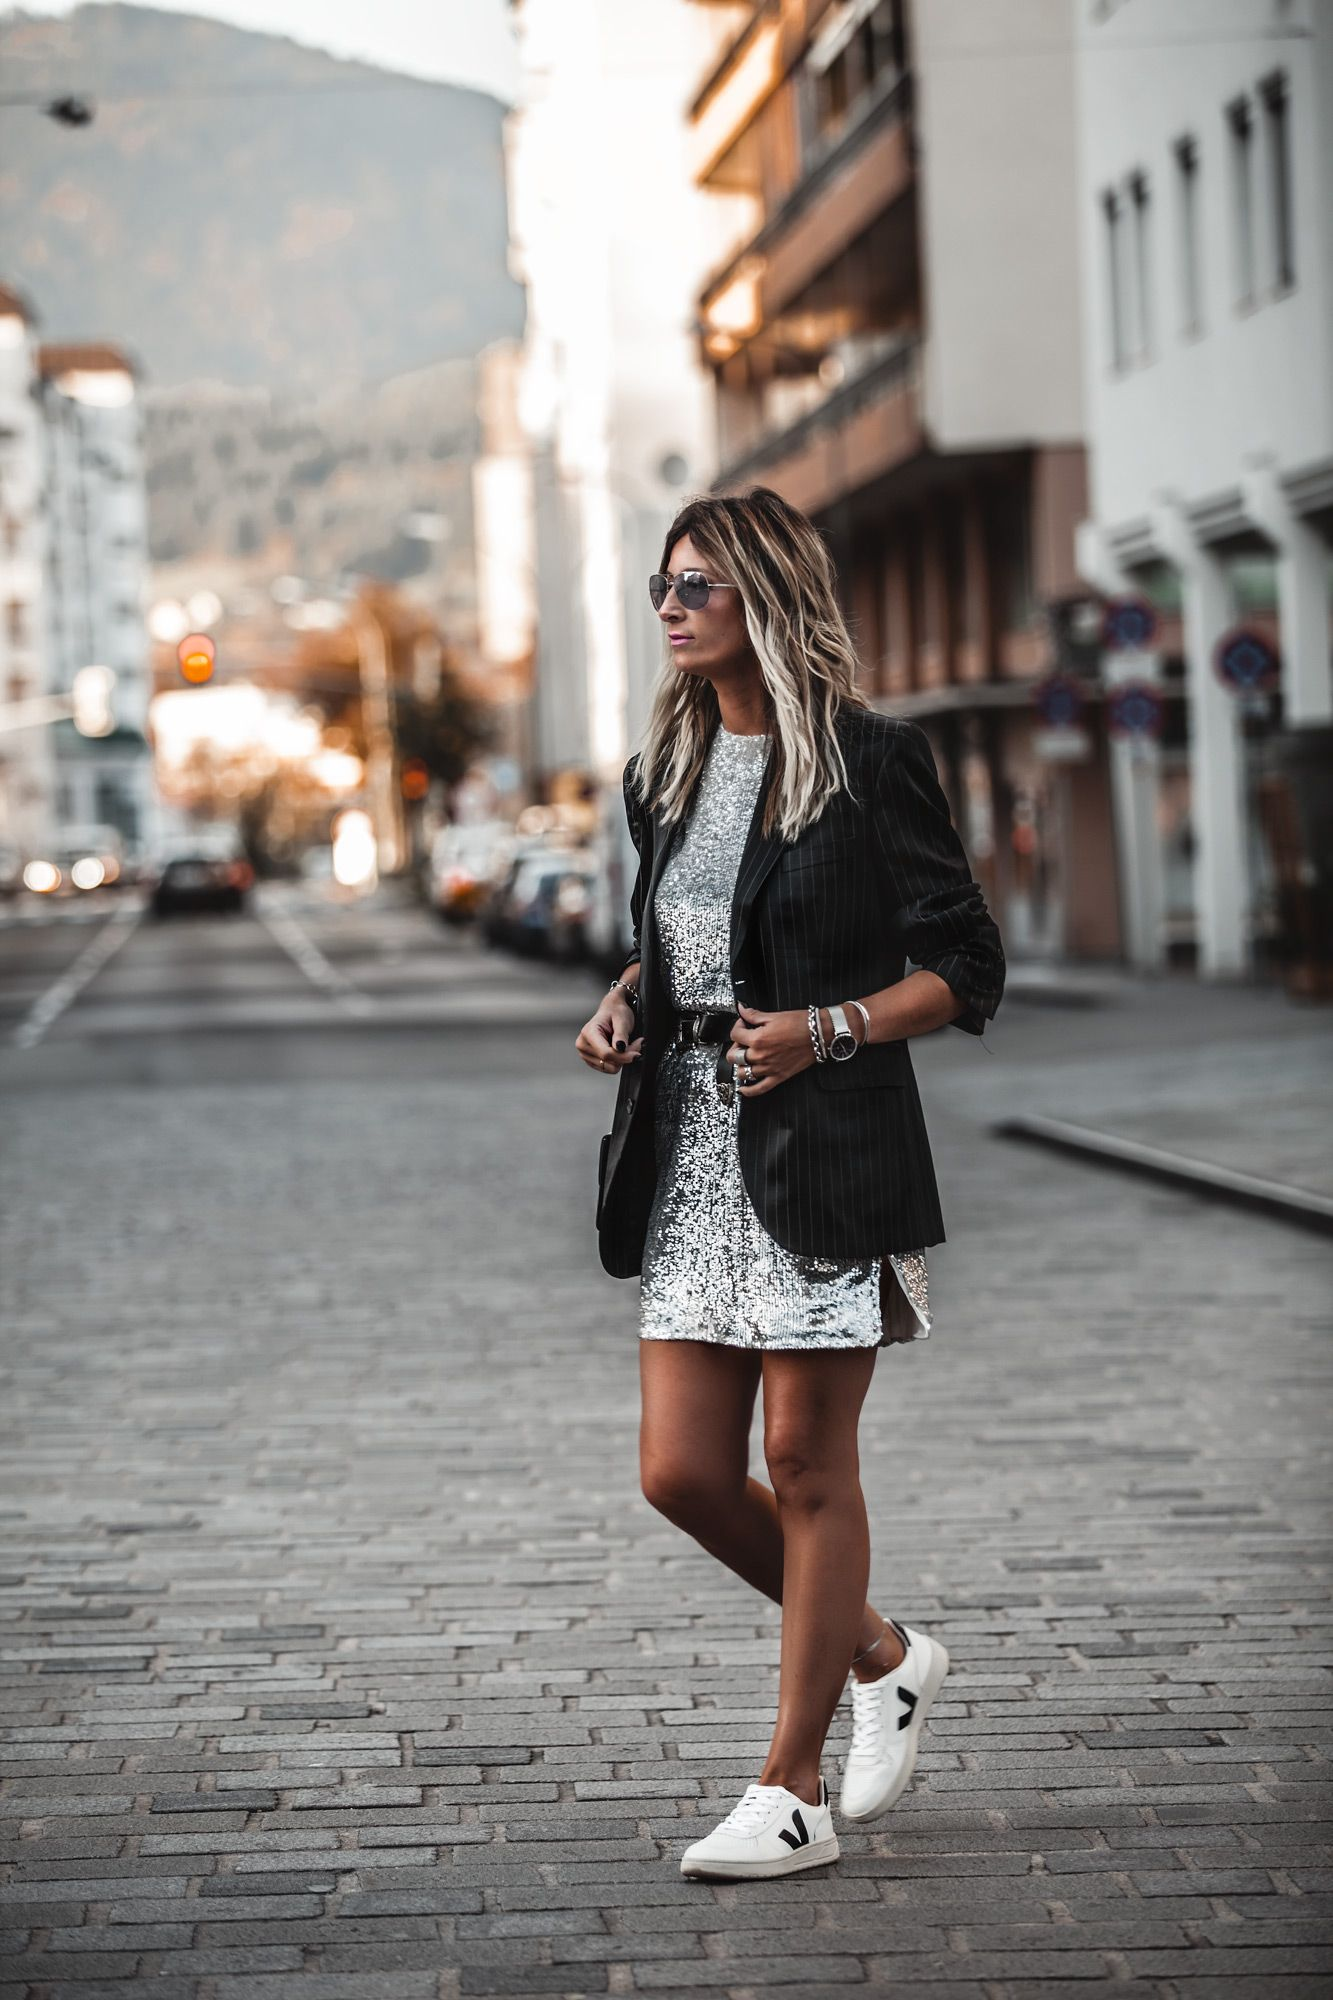 How To Dress Down A Sequin Dress Outfit Idea If You Want To Recreate This Look Try The Following Tips Dress And Sneakers Outfit Sequin Dress Outfit Fashion [ 2000 x 1333 Pixel ]